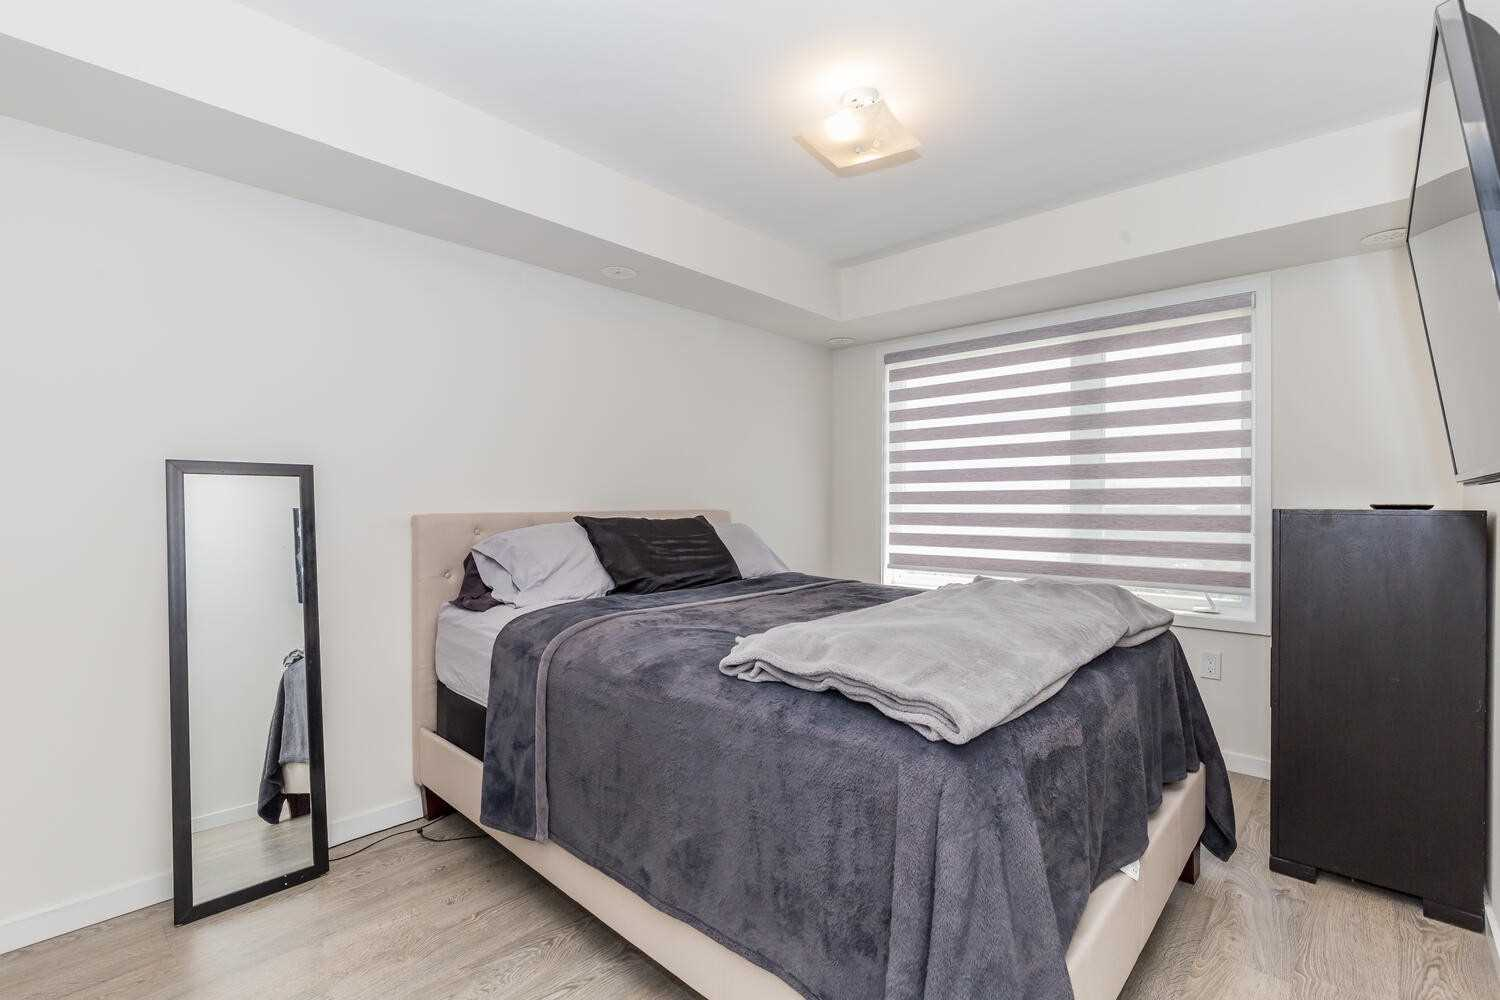 Image 3 of 17 showing inside of 2 Bedroom Condo Townhouse 2-Storey for Sale at 1711 Pure Springs Blvd Unit# 410, Pickering L1X0E3